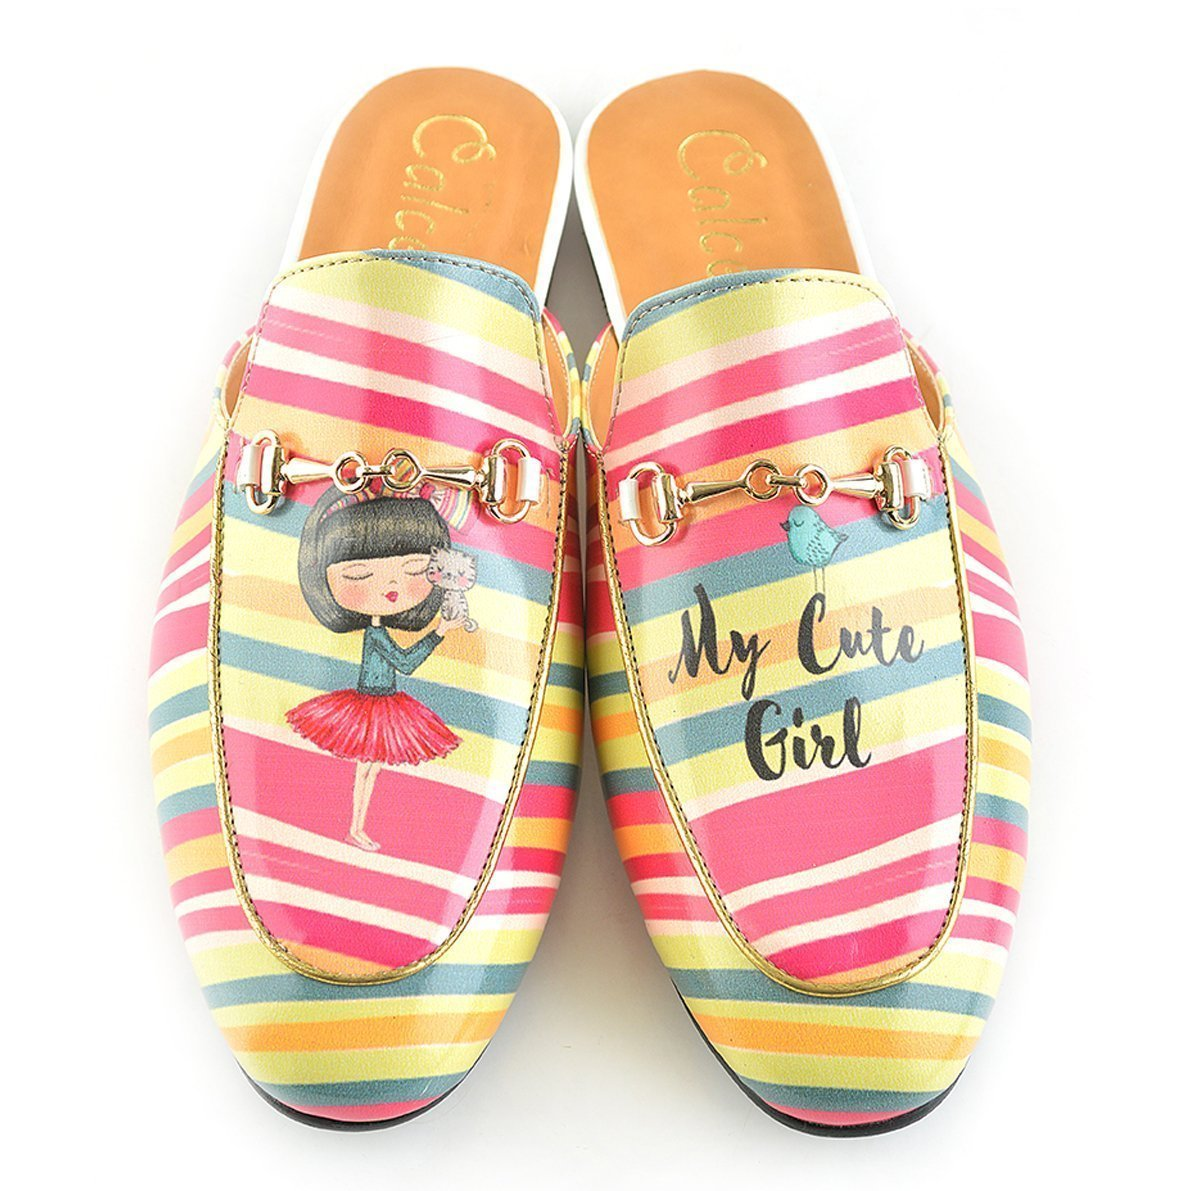 Blue and Pink, Eva, Leather Slip-On Loafer - CAG108